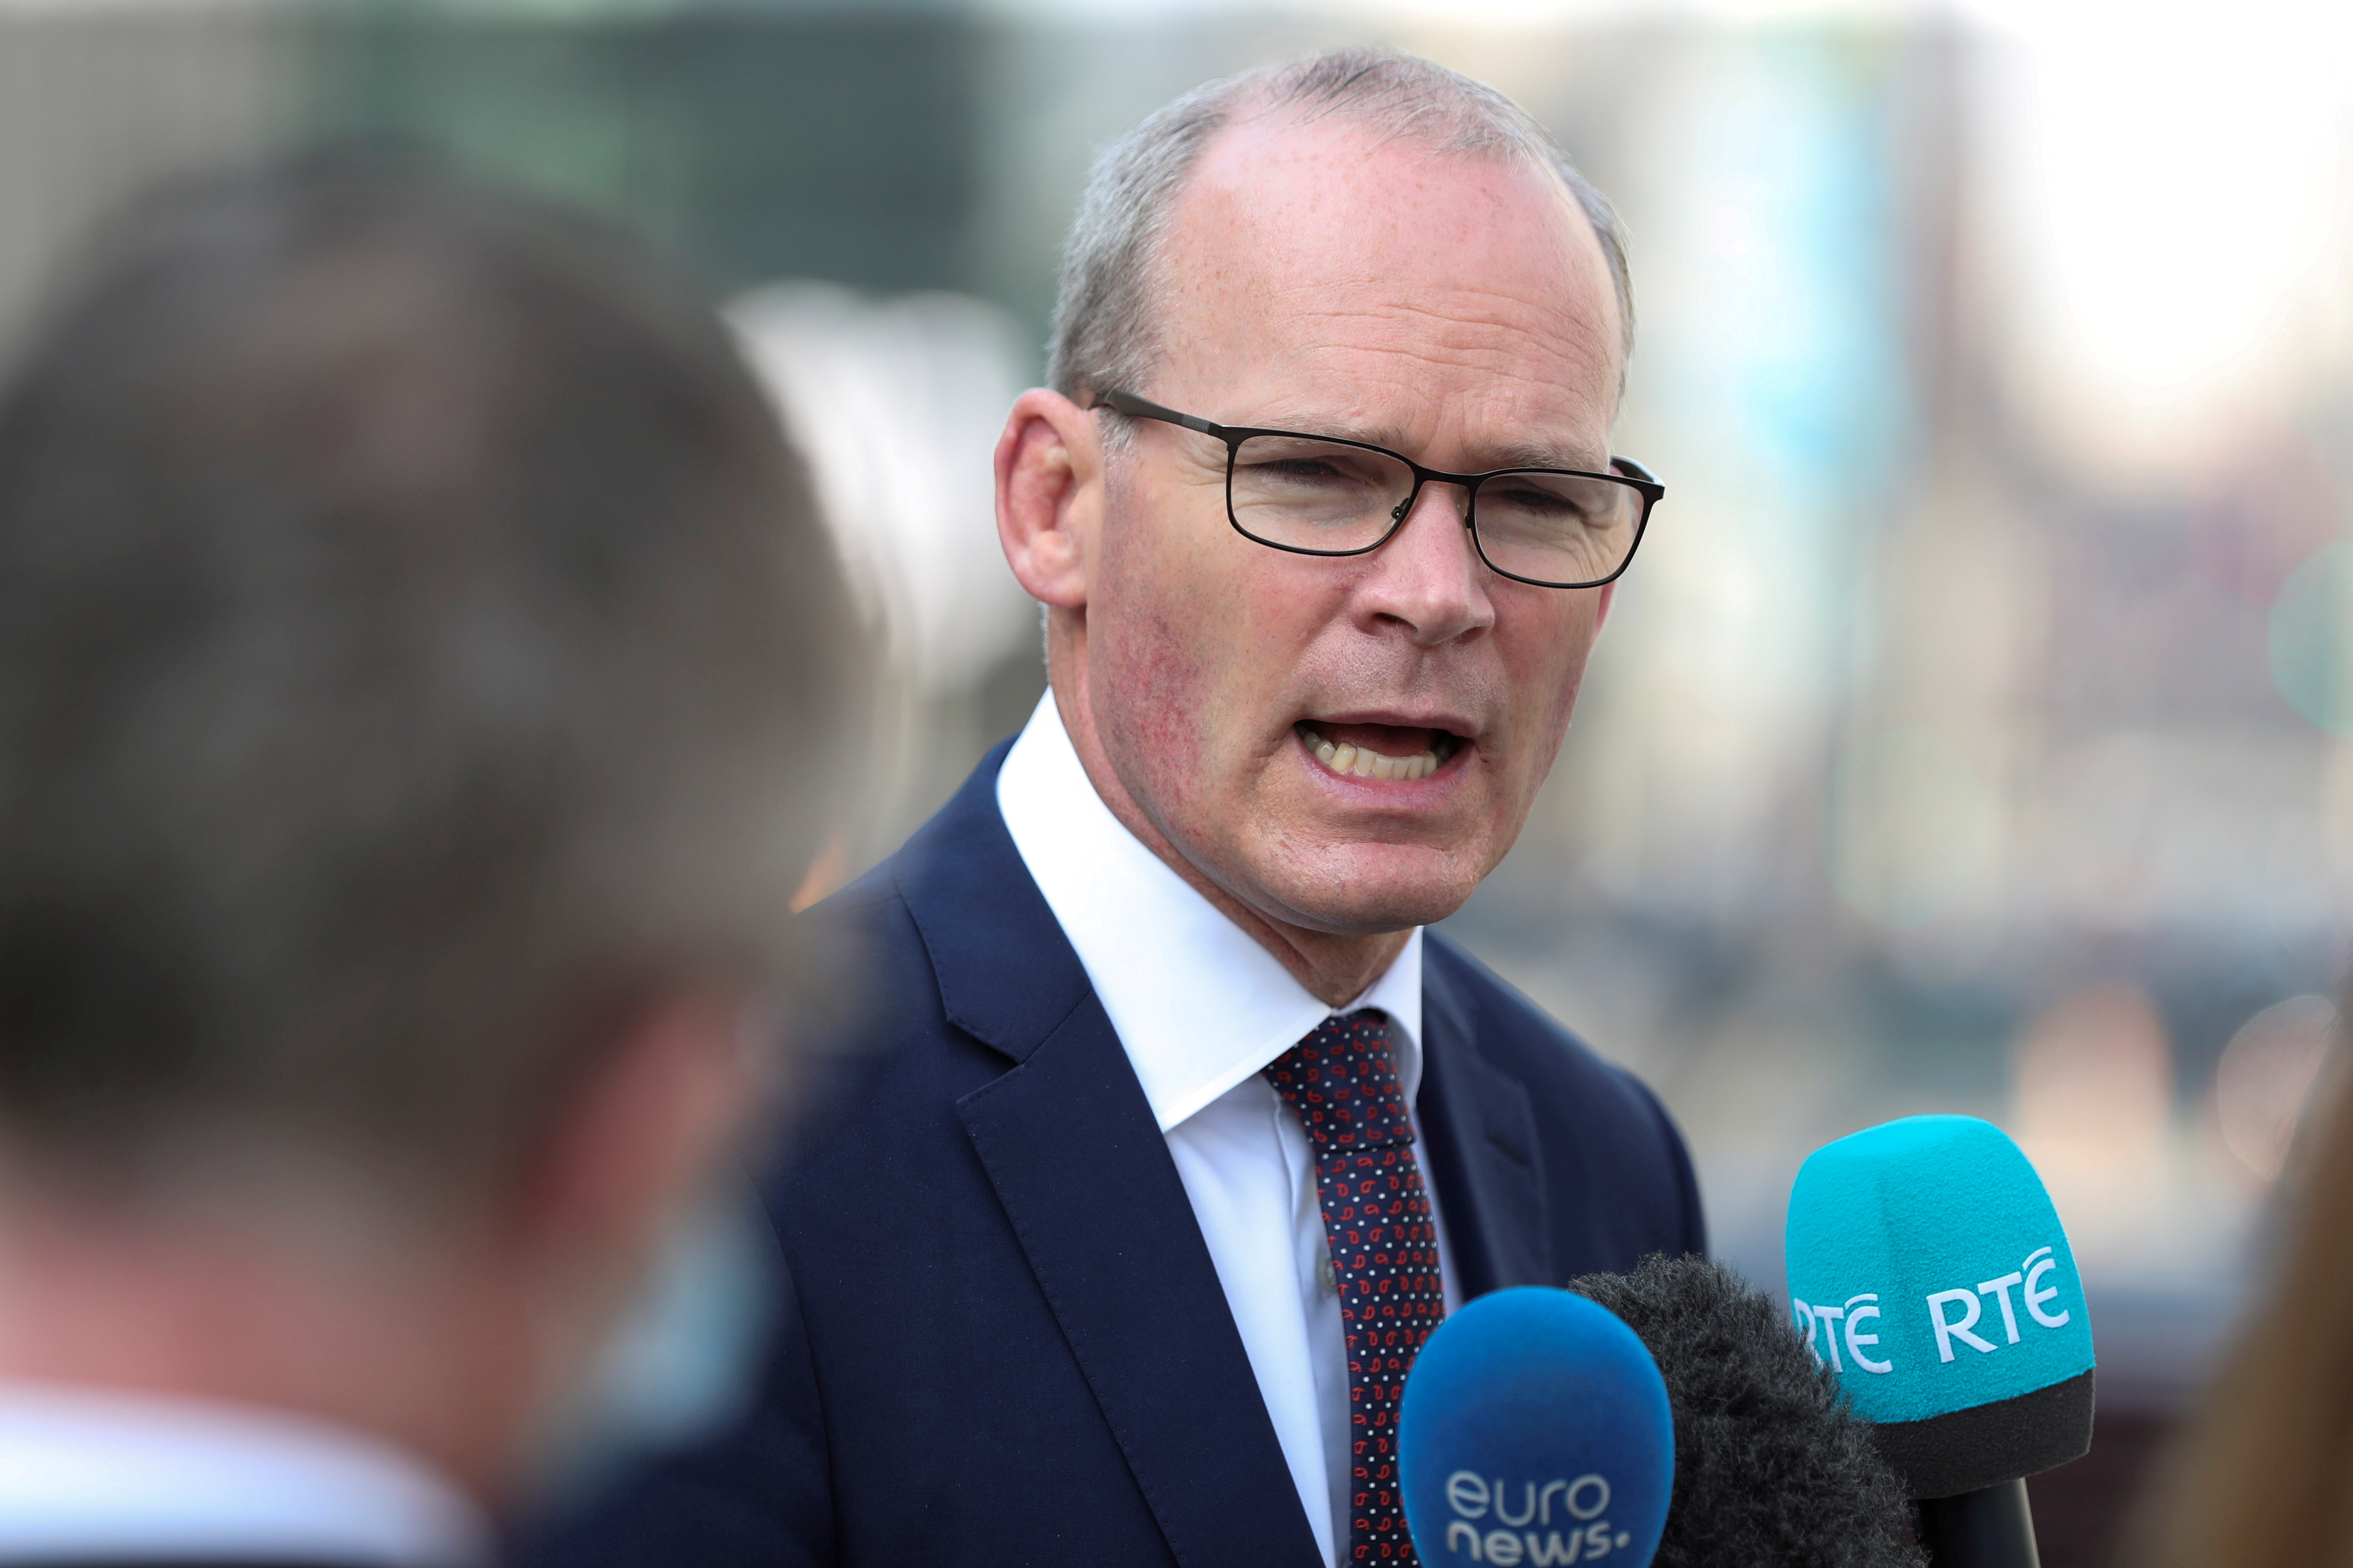 Irish Foreign Minister Simon Coveney, speaks to the media after a European general affairs ministers council, in Brussels, Belgium September 22, 2020. REUTERS/Yves Herman/File Photo